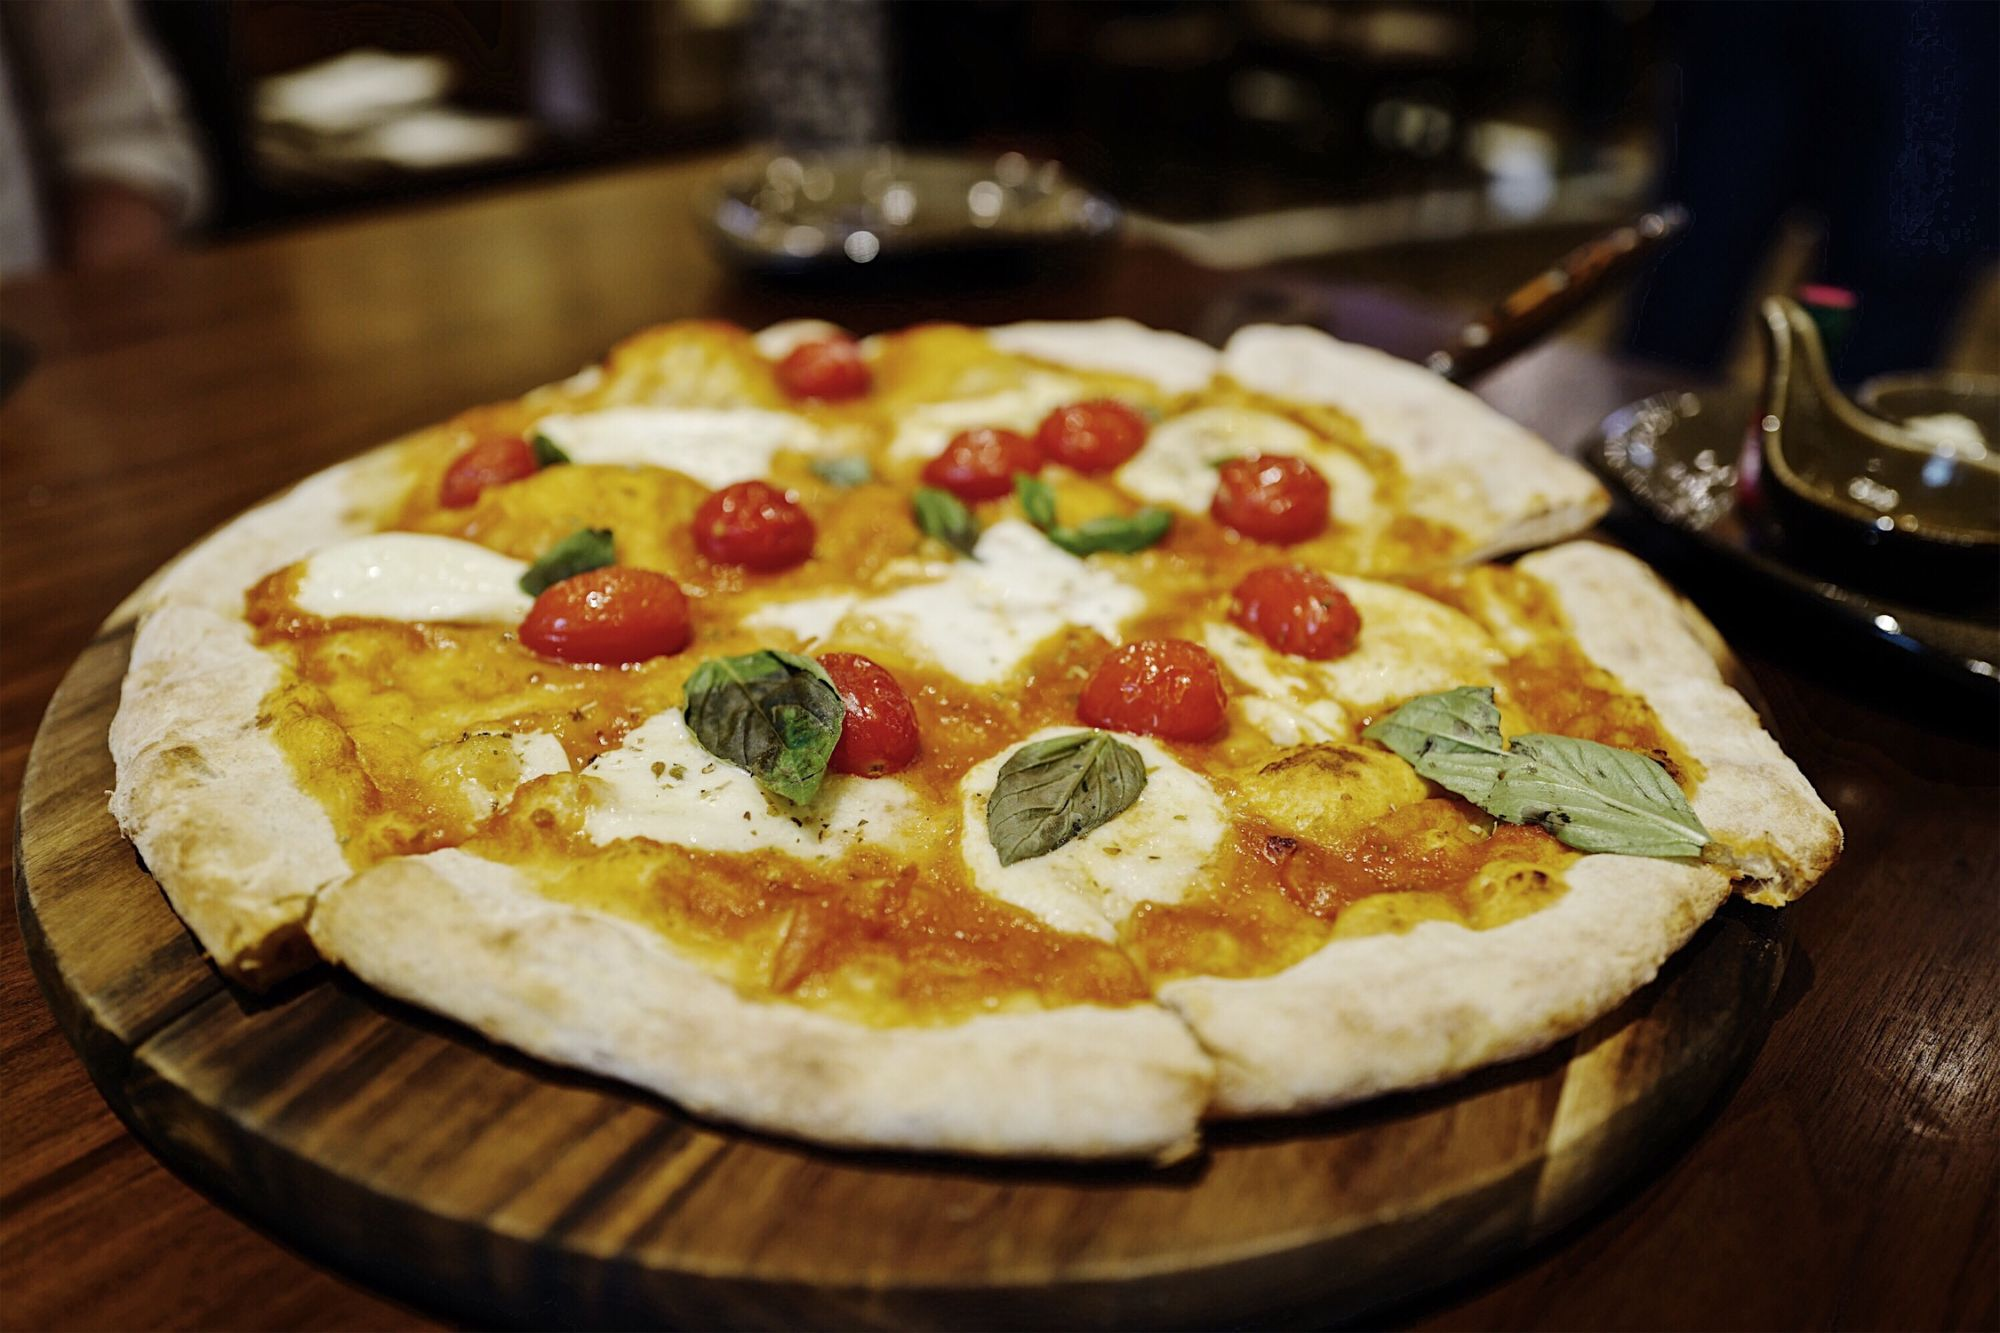 Coast MGM Cotai Charred Tomato Pizza with Buffalo Mozzarella and Basil Best Pizza Restaurants Macau Lifestyle